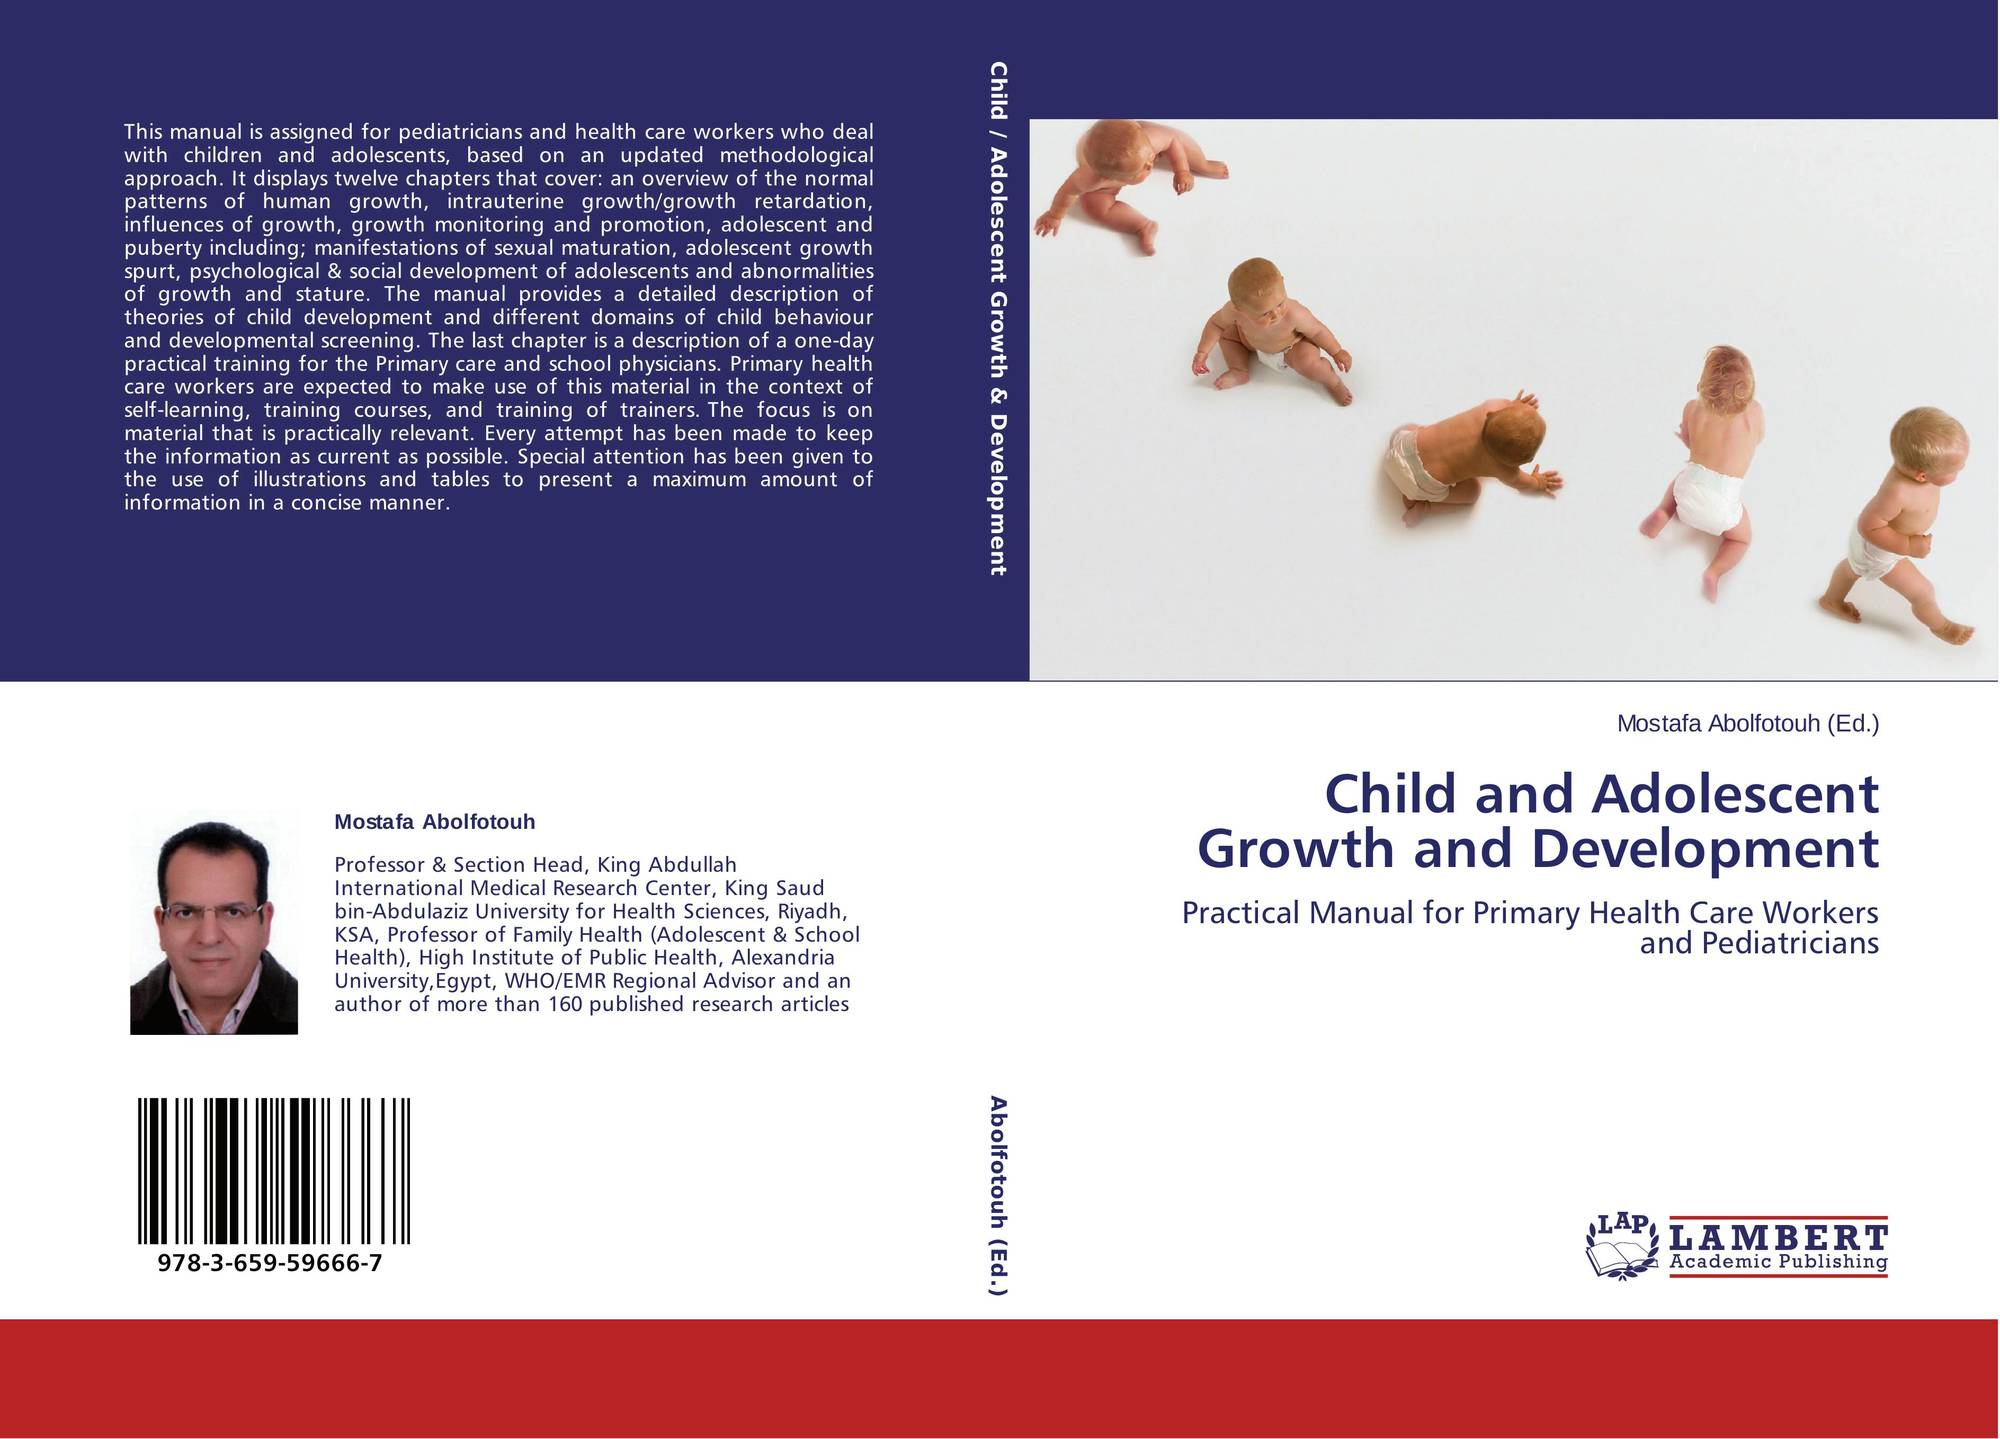 human growth behaviour and development social work essay Behavior and development – in interaction with the environment -- as they underlie social work practice b long version  understanding human behavior and the social environment is central to achieving the social justice that is a primary goal of the field of social work.